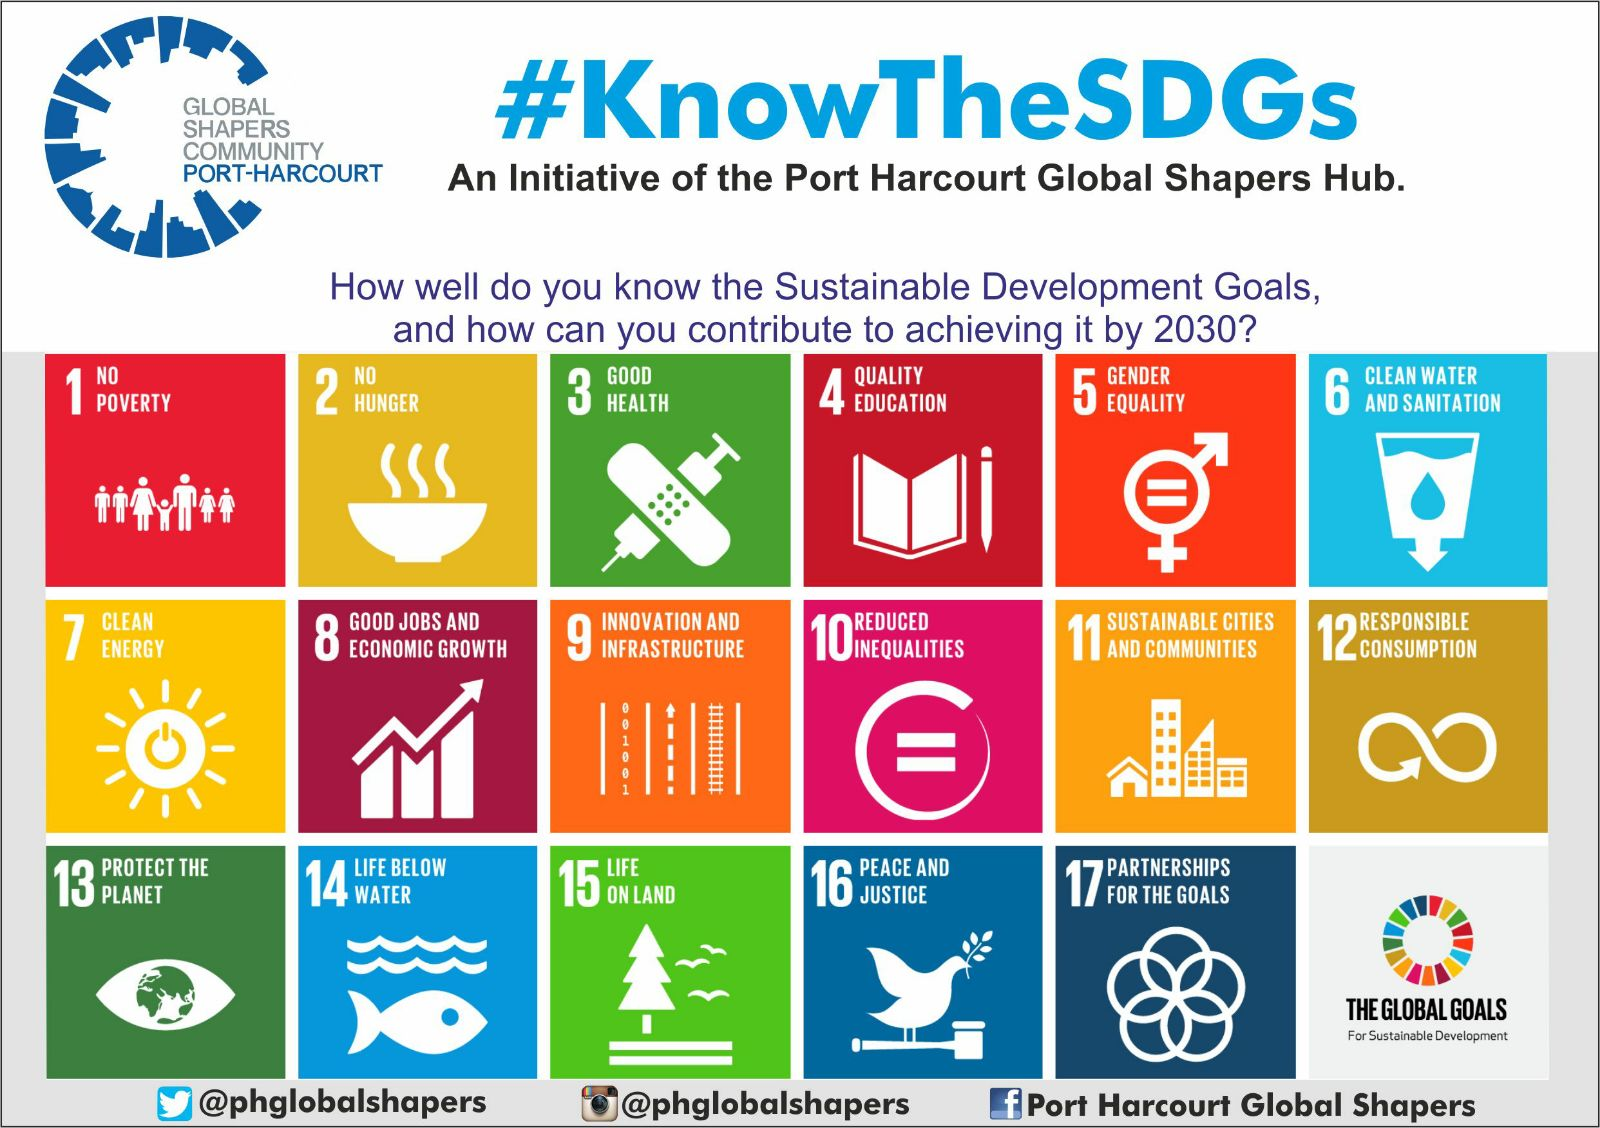 #KnowtheSDGs Campaign